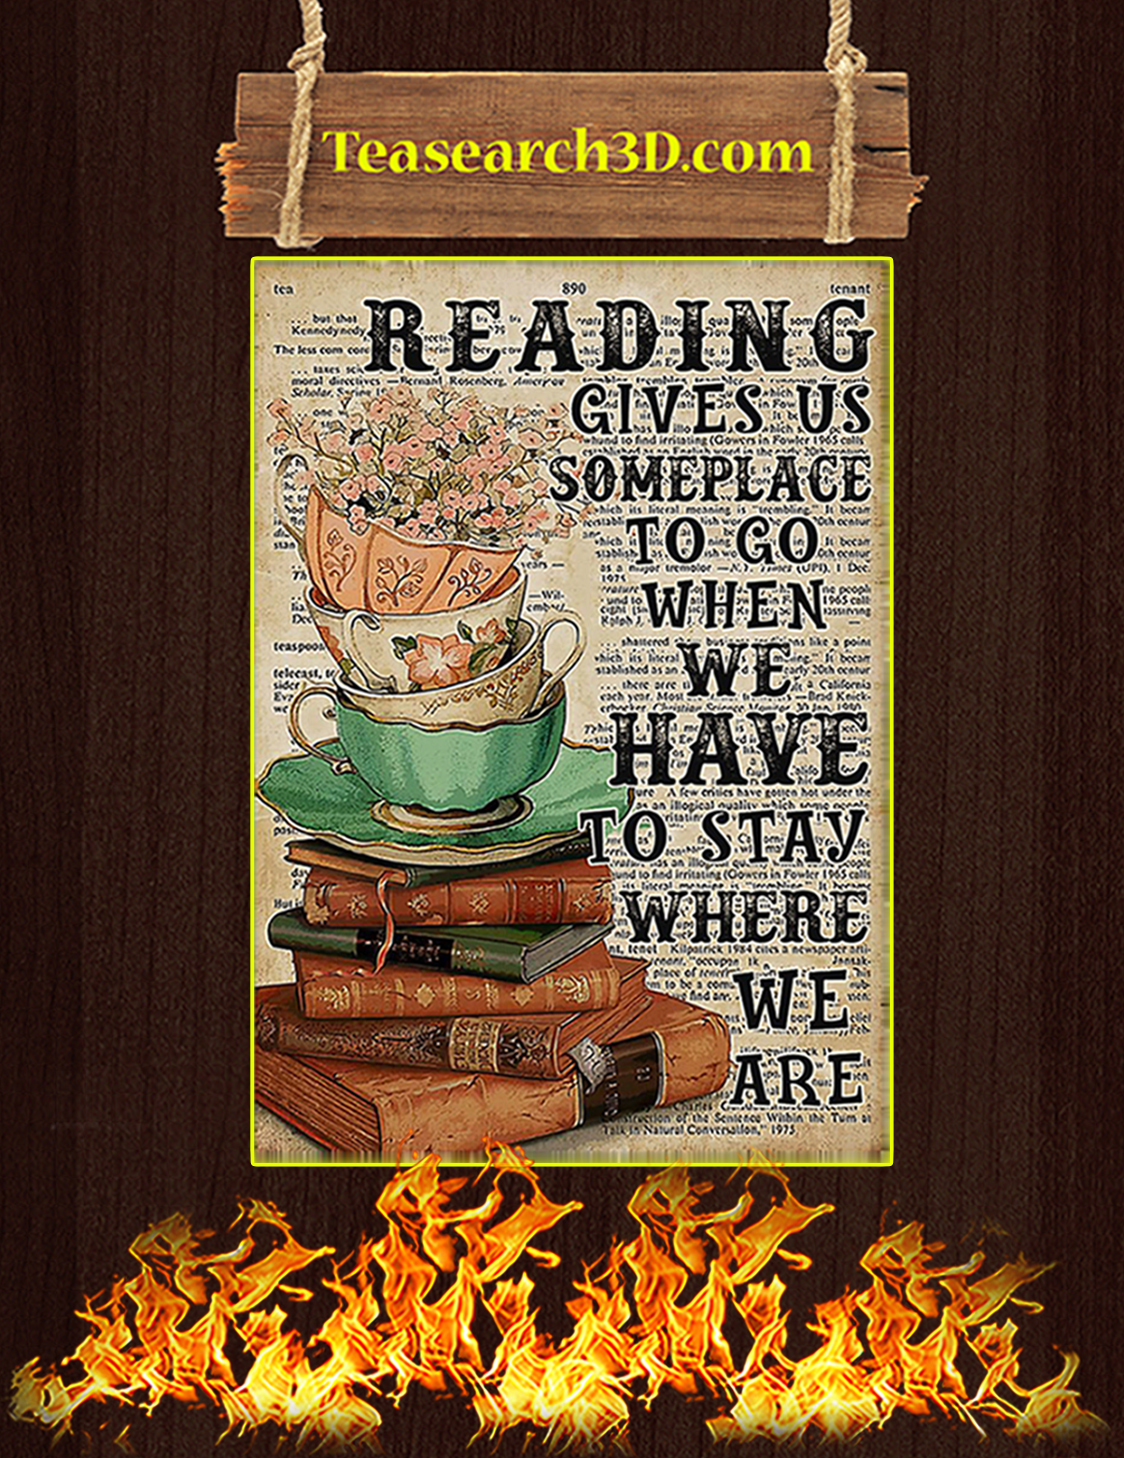 Reading gives us someplace to go when we have to stay where we are poster A2